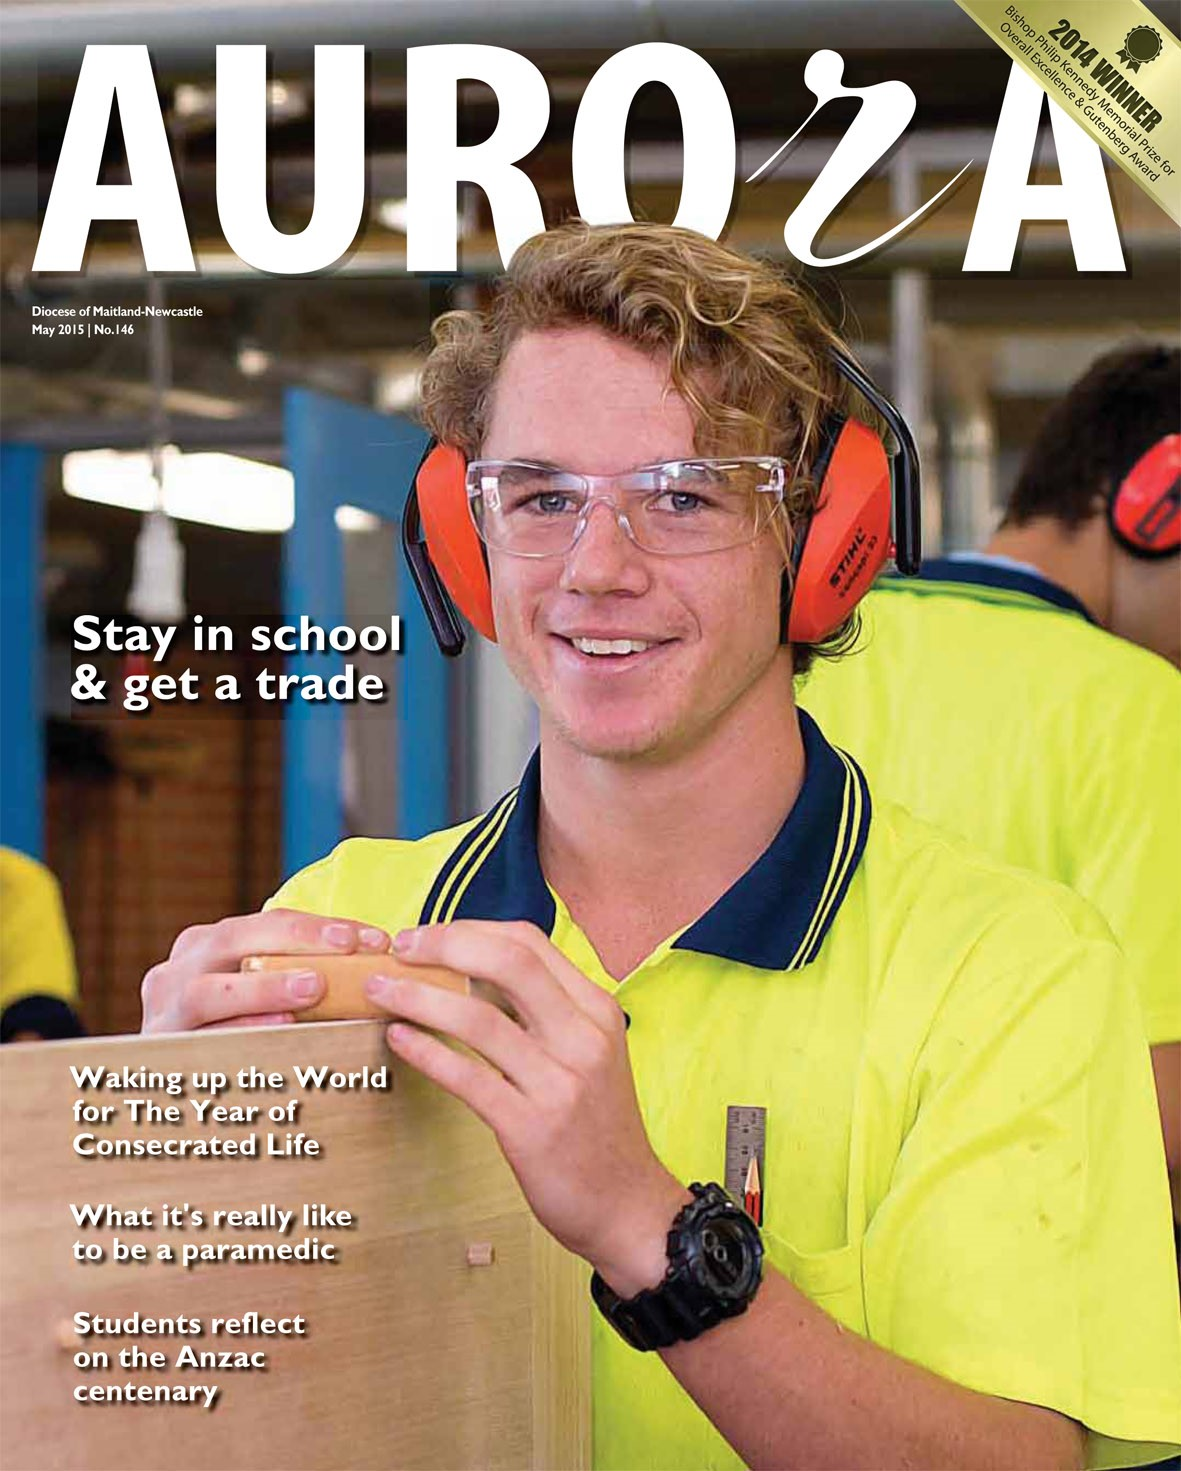 Aurora May 2015 Cover Image